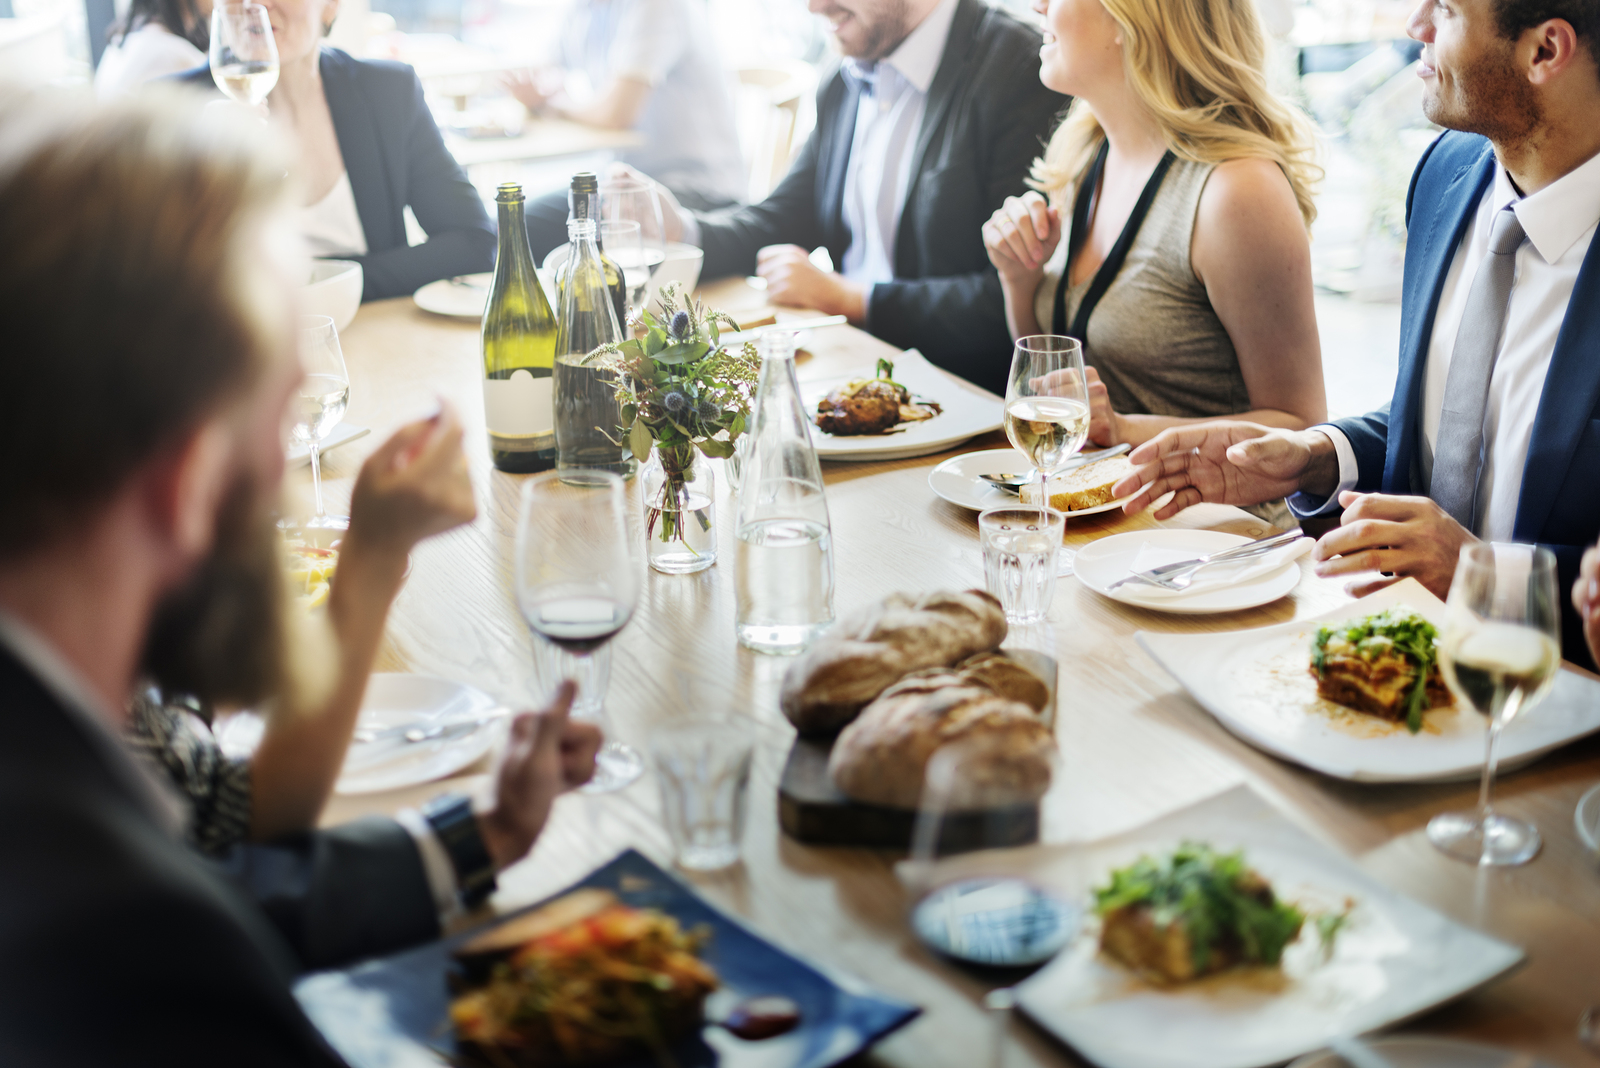 Business dining and entertaining